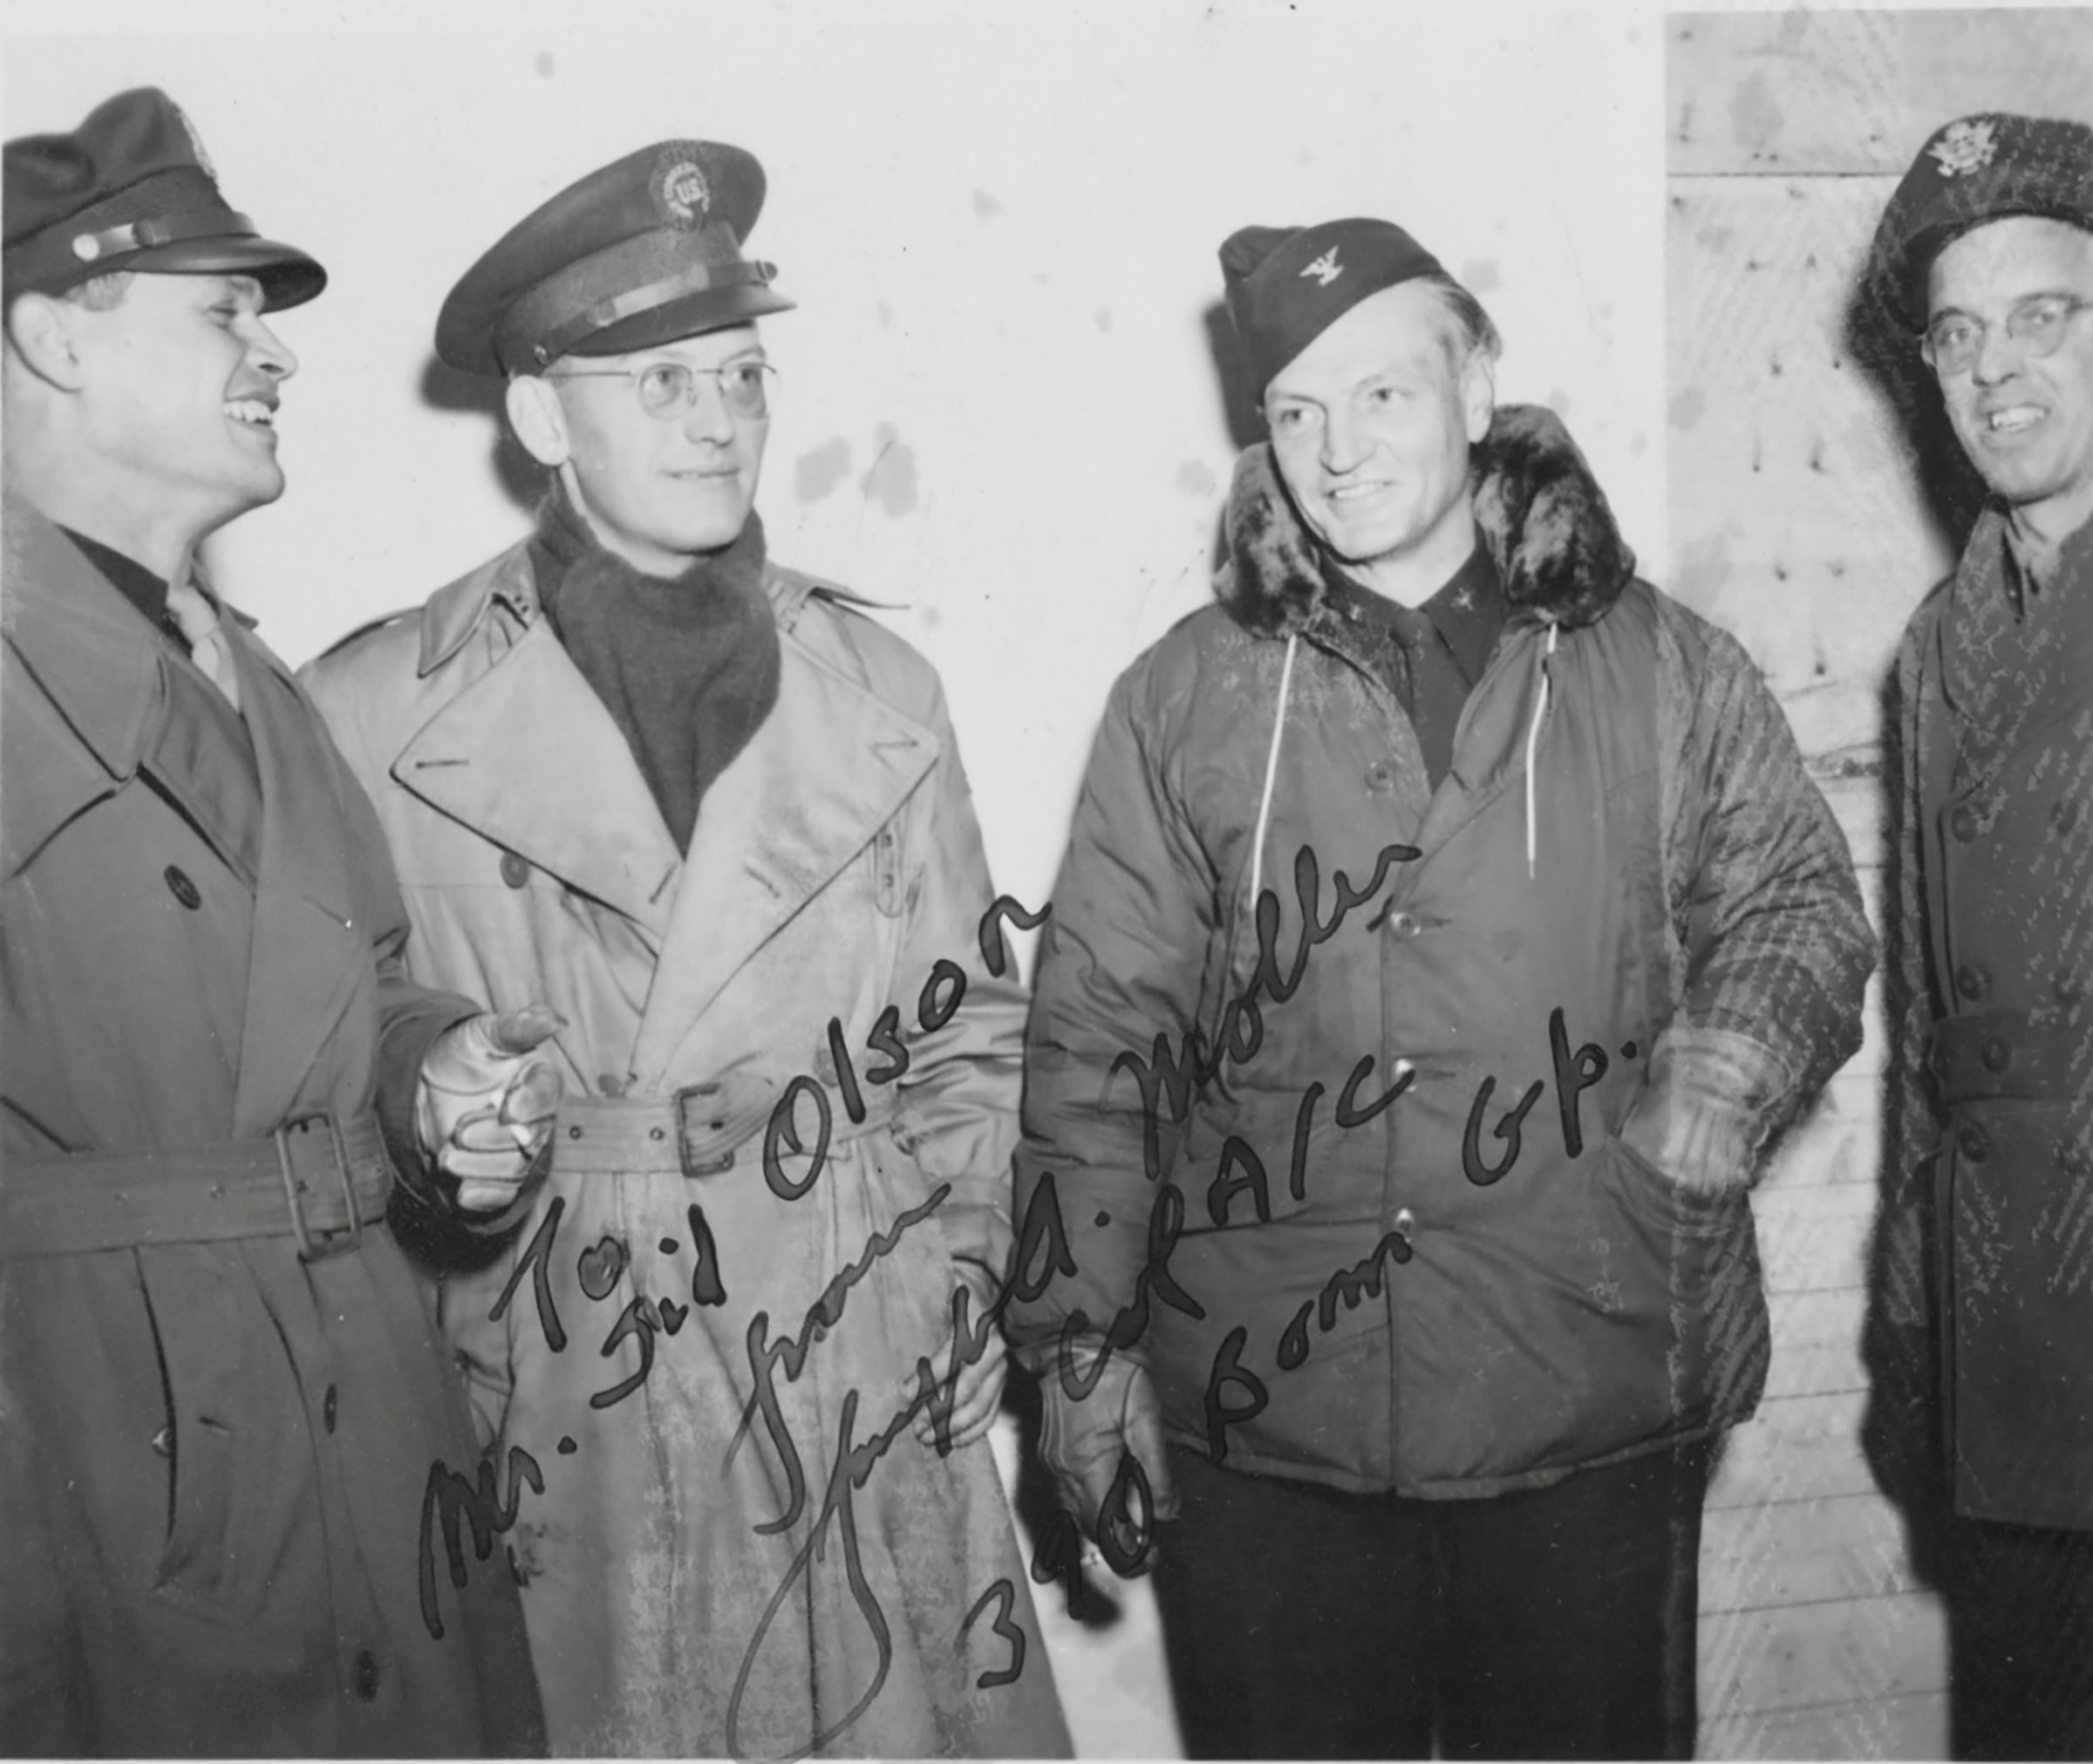 Olson (second from left) visiting U.S. troops somewhere in England in January 1945 and standing next to the 390th Bomb Group's commander Colonel Joseph A. Moller (second from right).